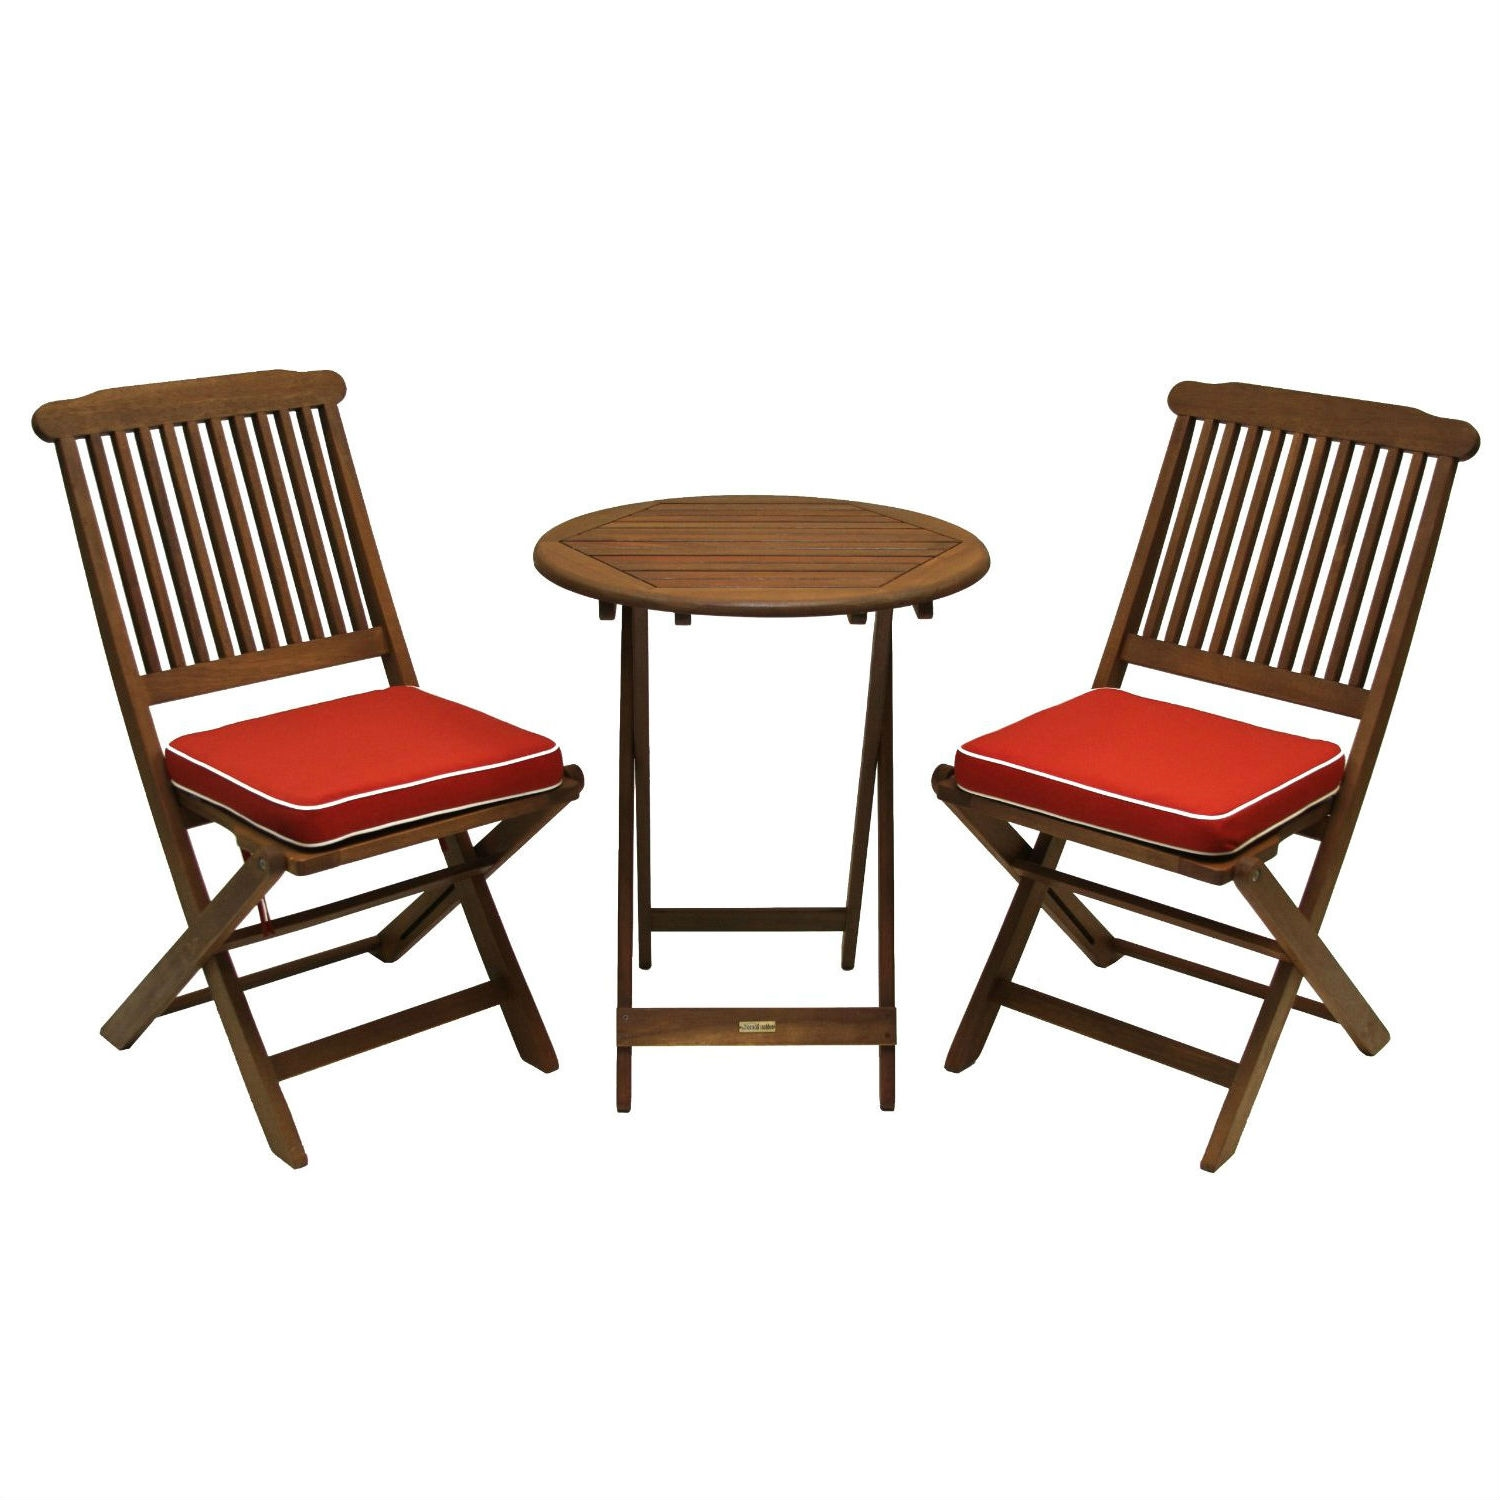 3-Piece Outdoor Patio Furniture Bistro Set with Red Seat Cushions